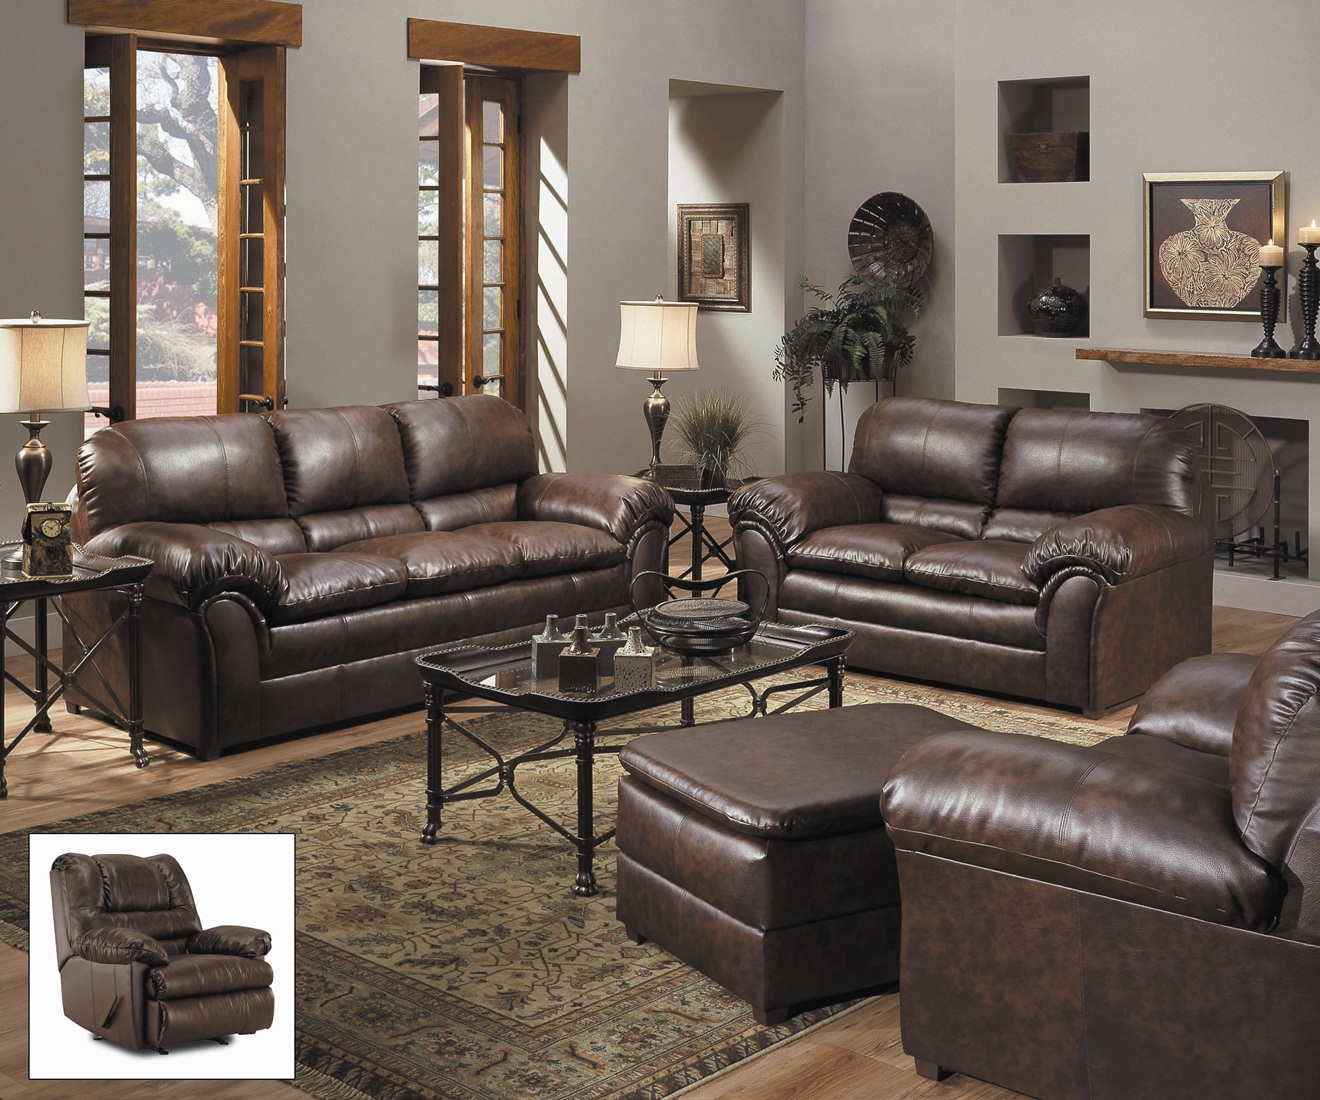 Geneva classic brown bonded leather living room furniture for Leather living room furniture